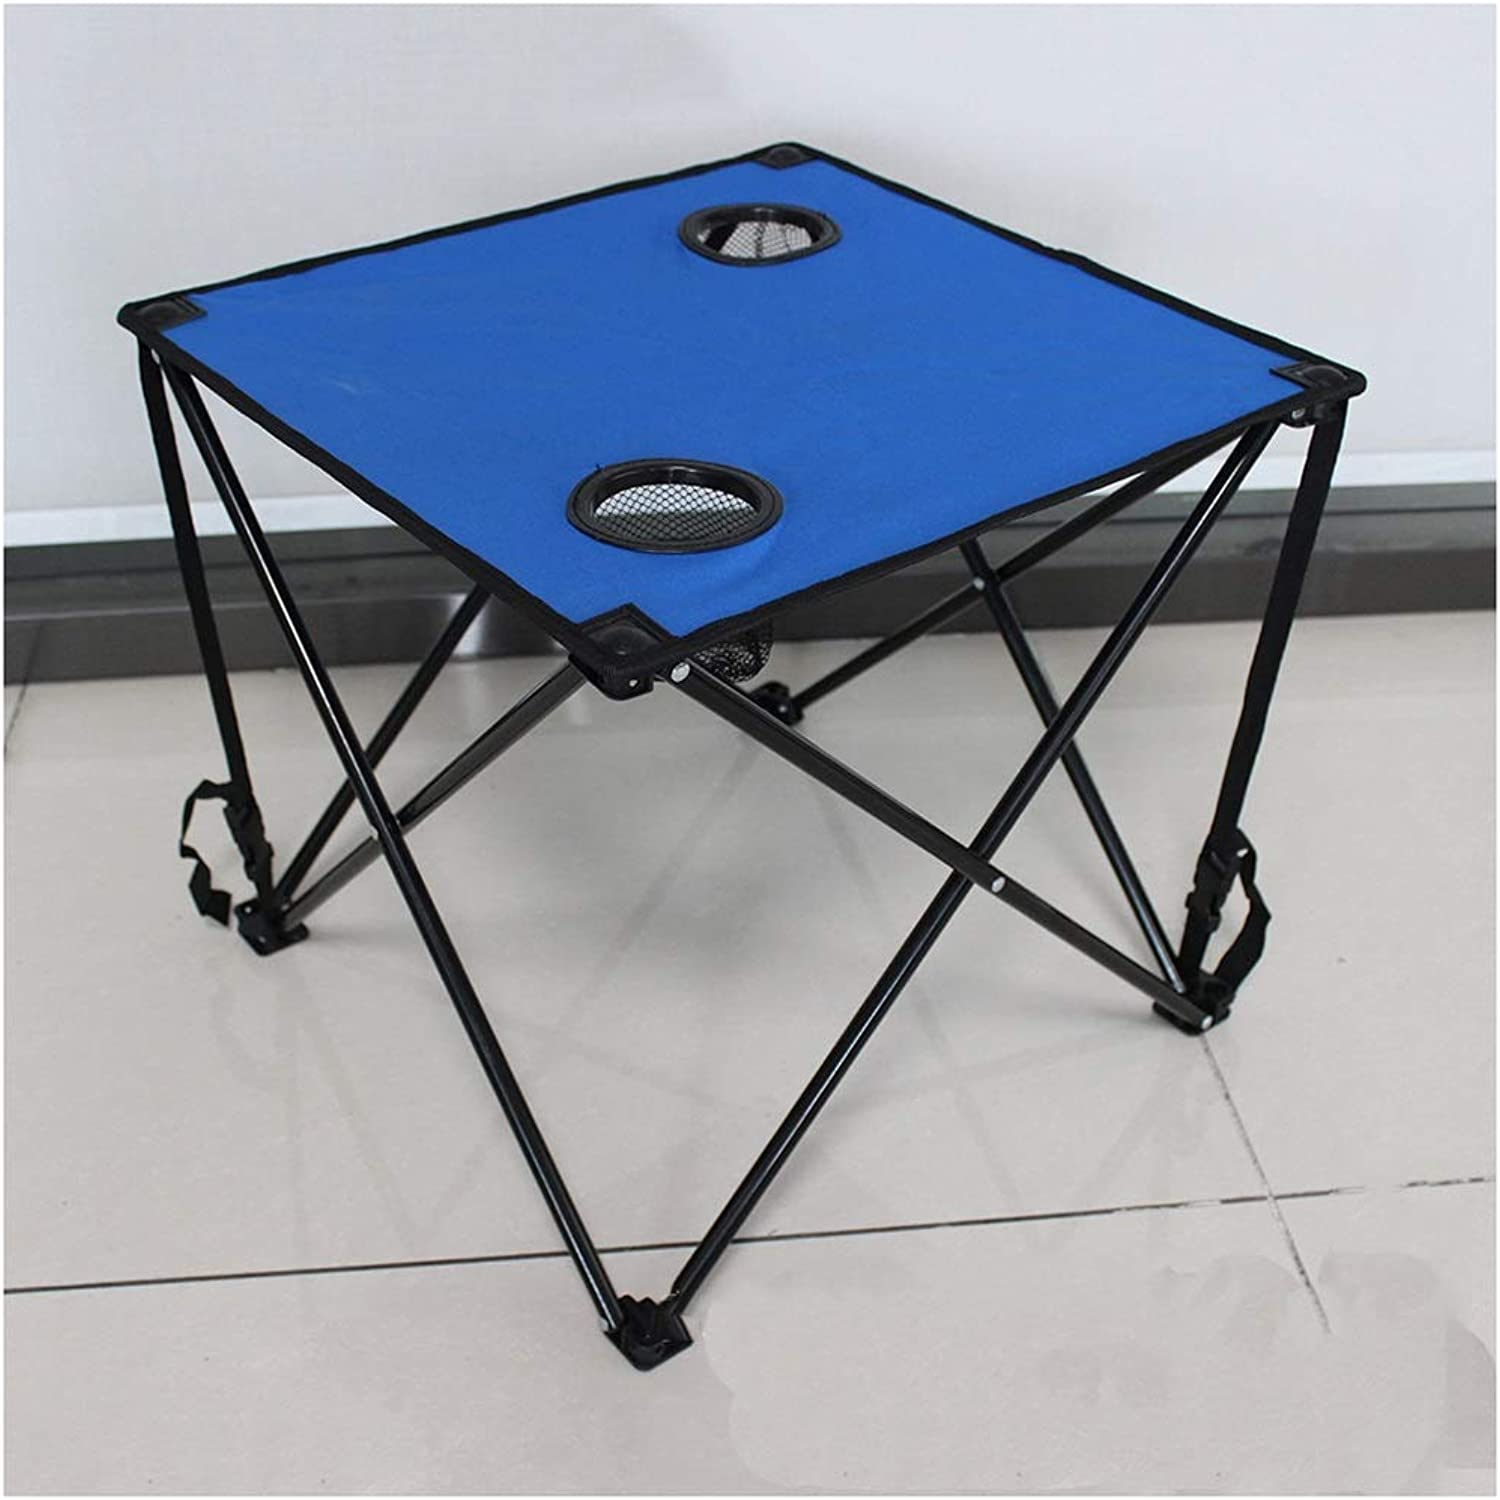 Folding Table Convenient and Multifunctional Oxford Cloth Steel Folding Table Outdoor Beach Camping Indoor Dining Table